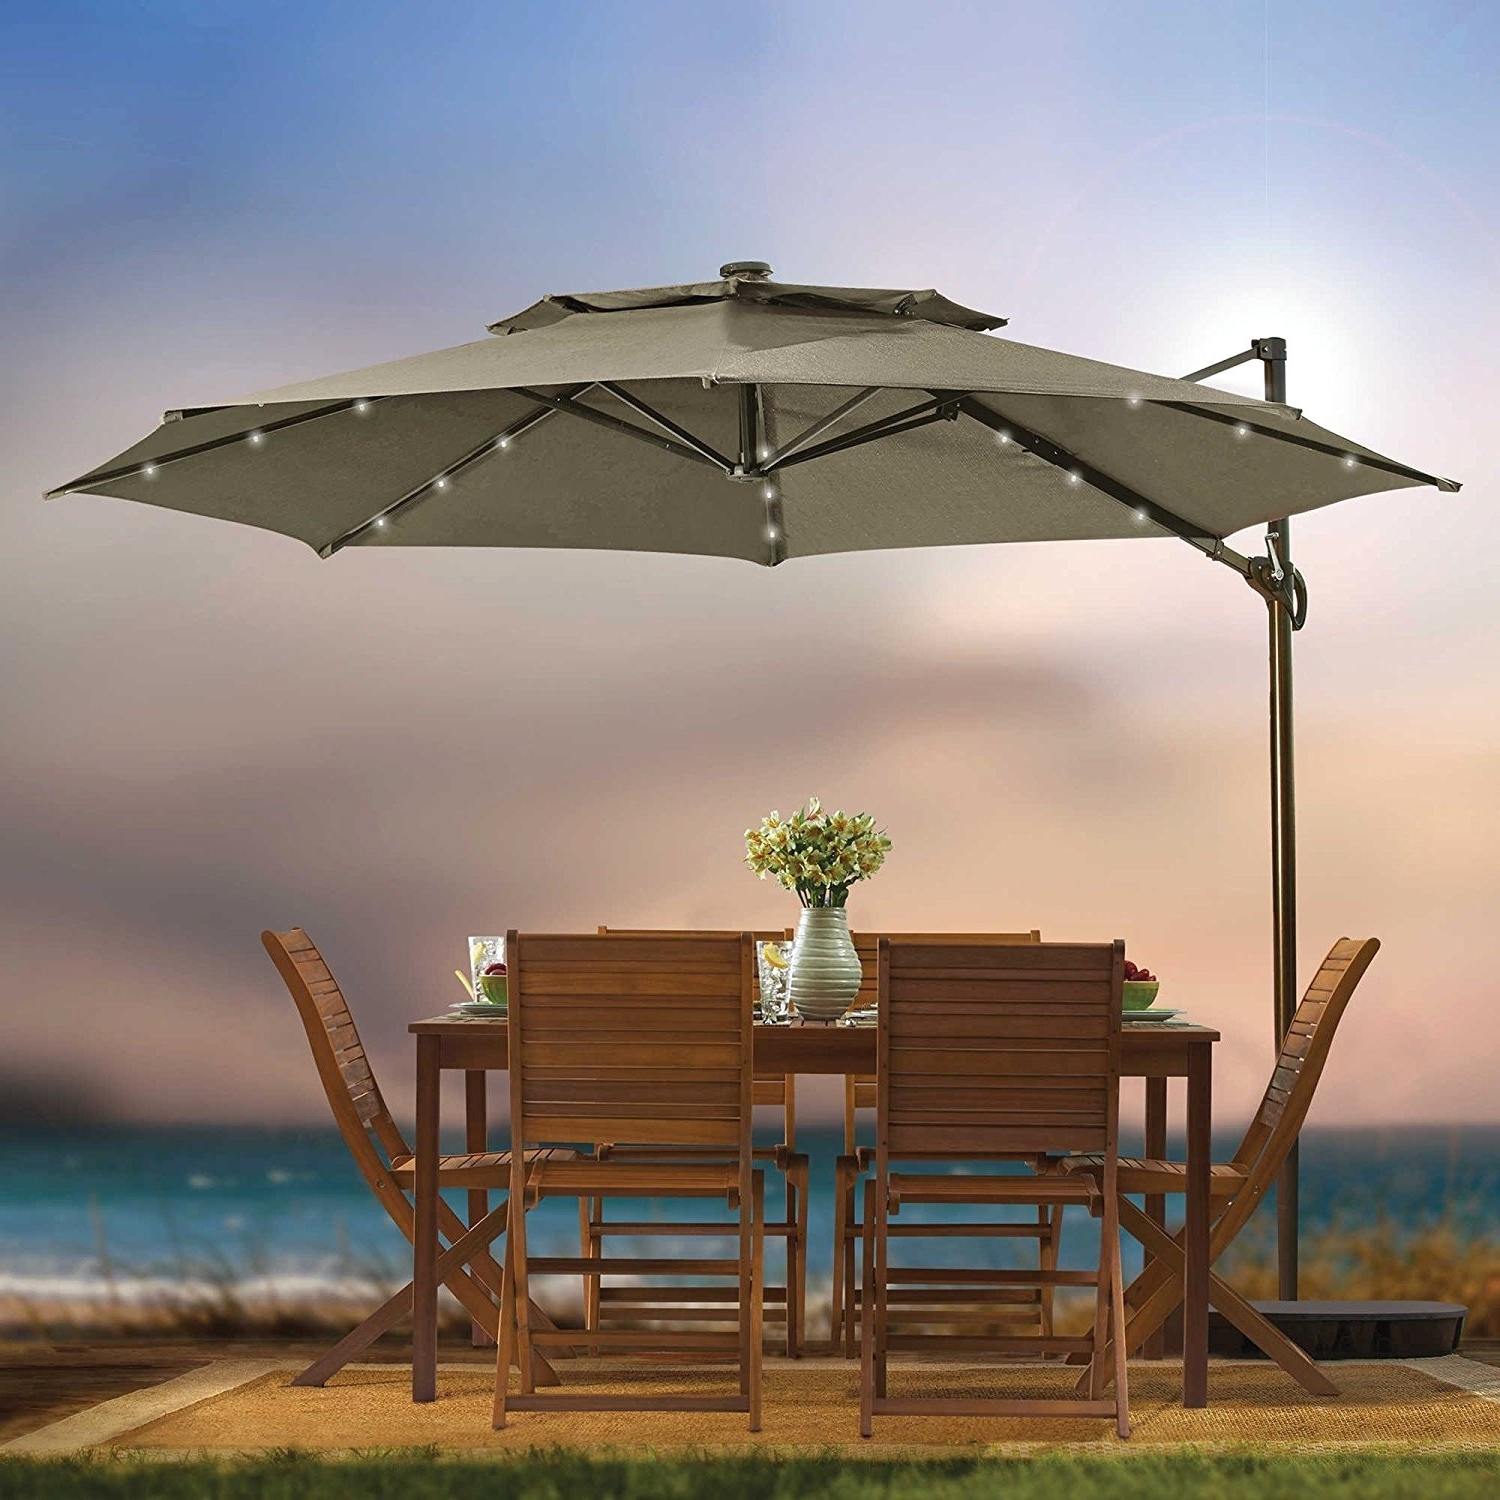 4 6 Foot Patio Umbrellas Awesome Amazon Sundale Outdoor 9 Feet Steel Pertaining To Most Popular Unusual Patio Umbrellas (Gallery 10 of 20)